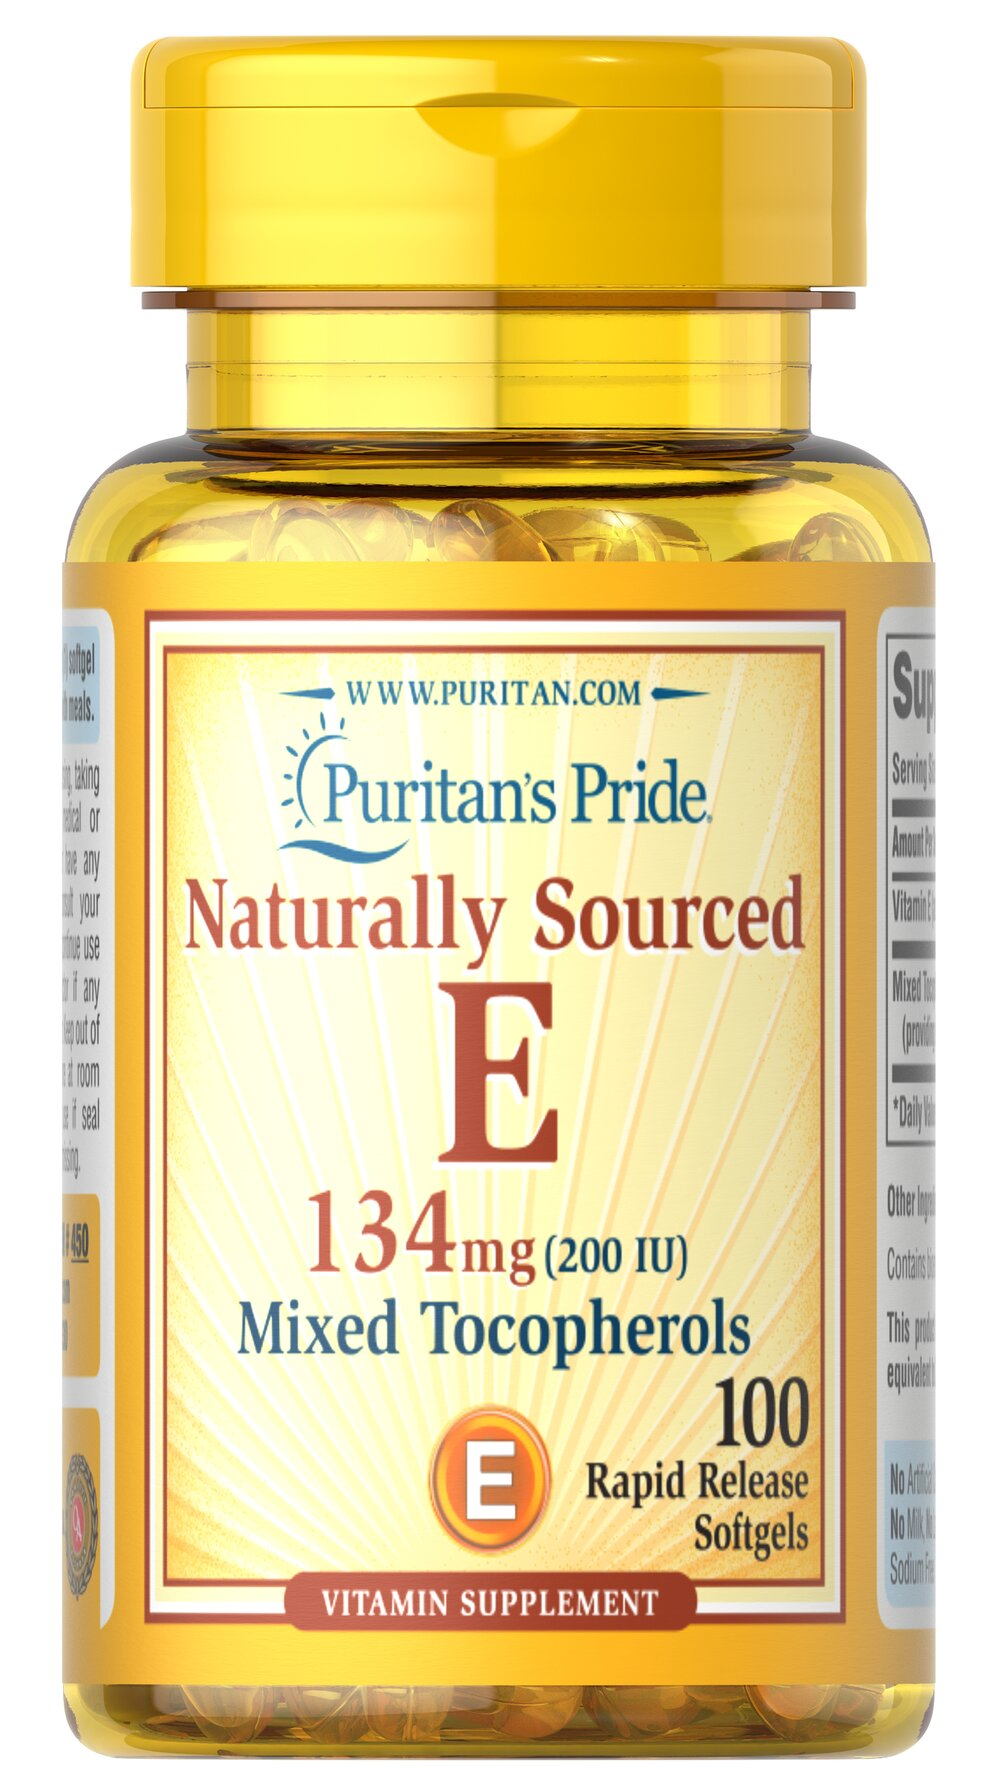 Vitamin E-200 iu Mixed Tocopherols Natural Thumbnail Alternate Bottle View